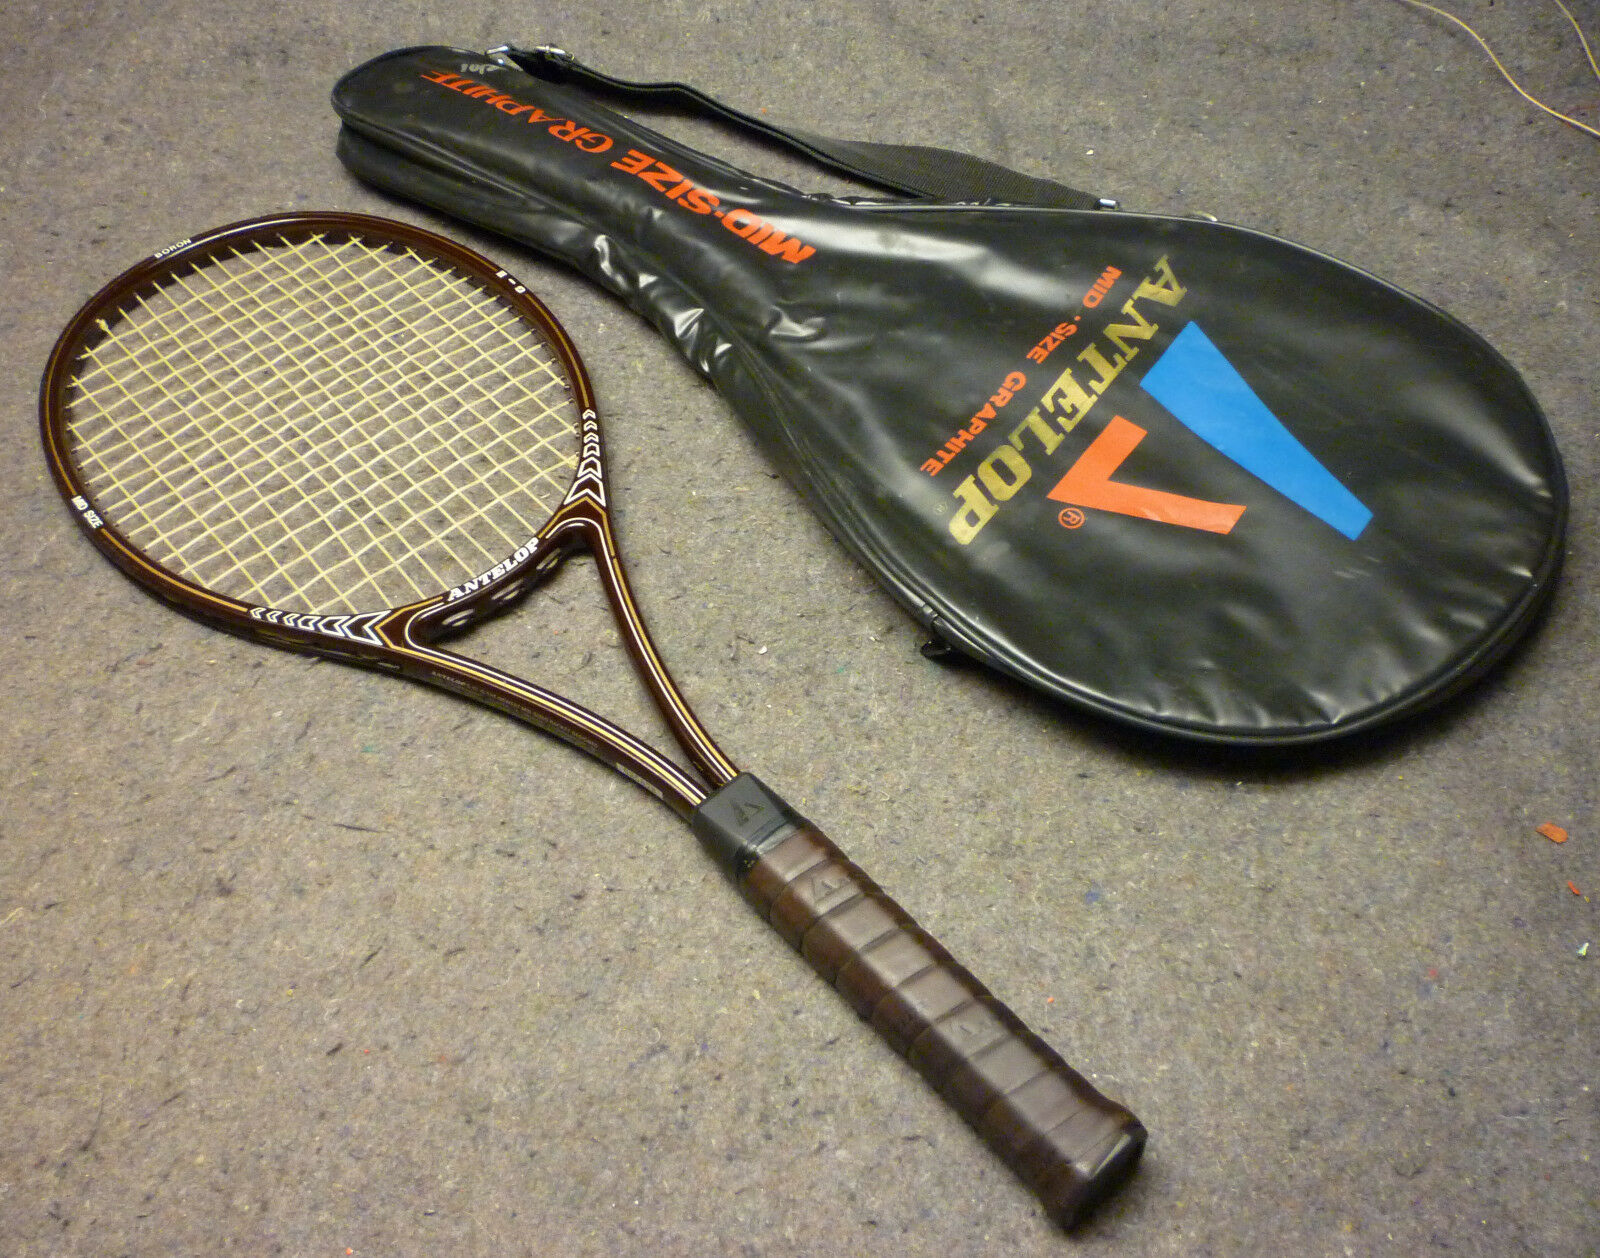 Antelope Mid-Size BgoldN Tennis Racquet lll 4 5 8 Grip with 2 Racquet Cover